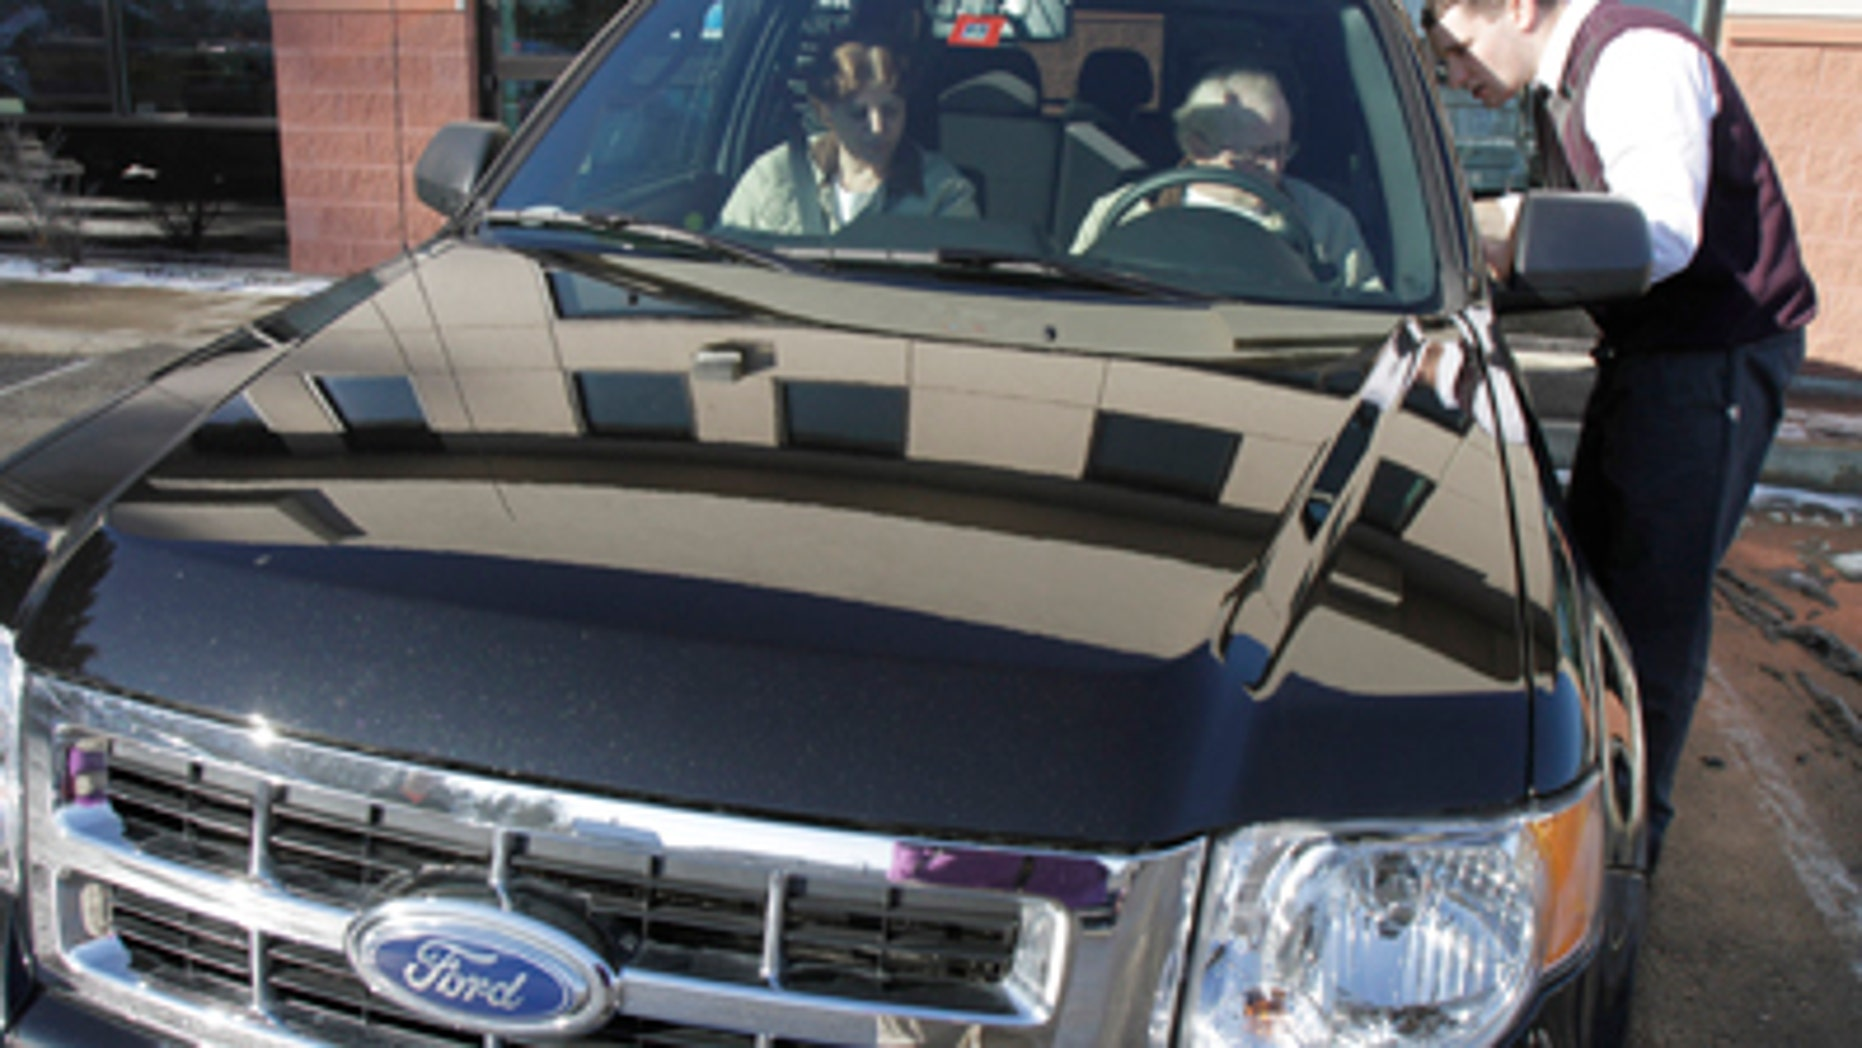 In this Dec. 30, 2010 photo, George and Sheila Snyder, of Washington, Vt., take delivery of their new 2011 Ford Escape from salesman John Cassel, right, at the Formula Ford dealership showroom in Montpelier, Vt. Automakers such as General Motors Co., Ford Motor Co. and Toyota Motor Corp. will report December and year-end sales figures throughout the day, on Tuesday, Jan. 4, 2011. Analysts are forecasting a modest increase that could show that customers bought more vehicles in 2010 than in 2009, when sales plummeted to their lowest levels since 1982. (AP Photo/Toby Talbot)